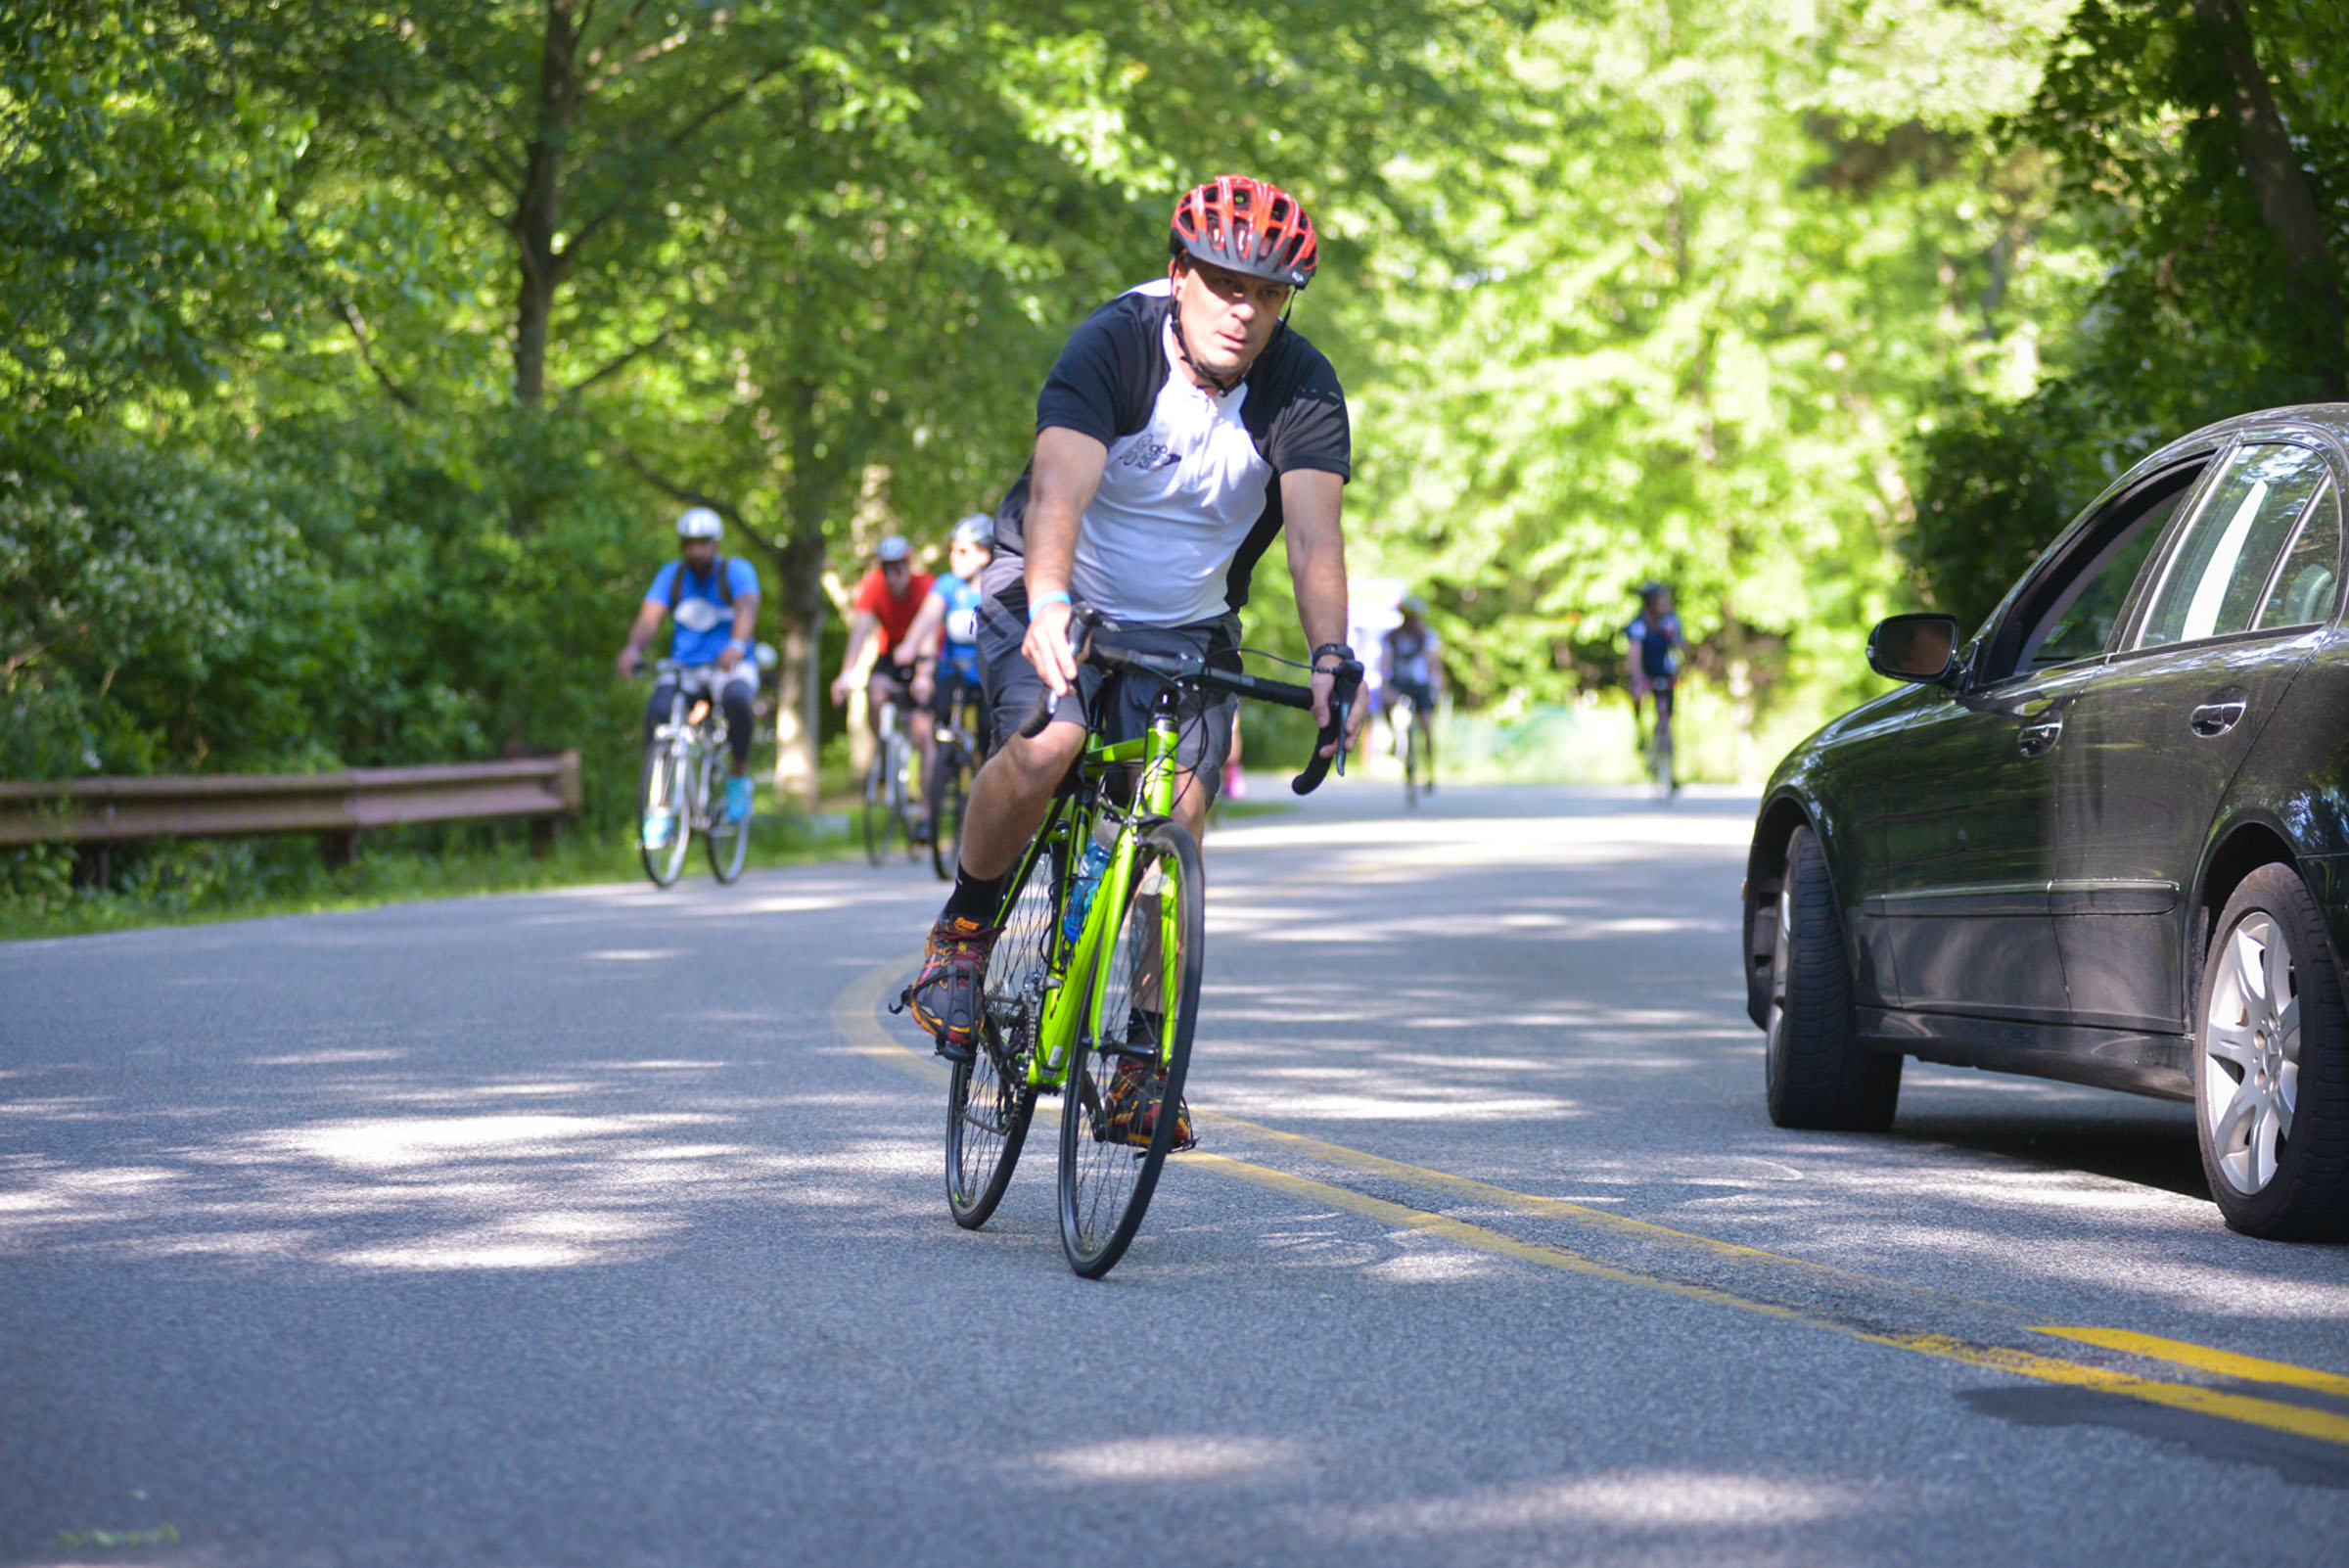 2017-06-04 GTD4A Charity Bike Ride - BCC - Paramus NJ-1870.jpg